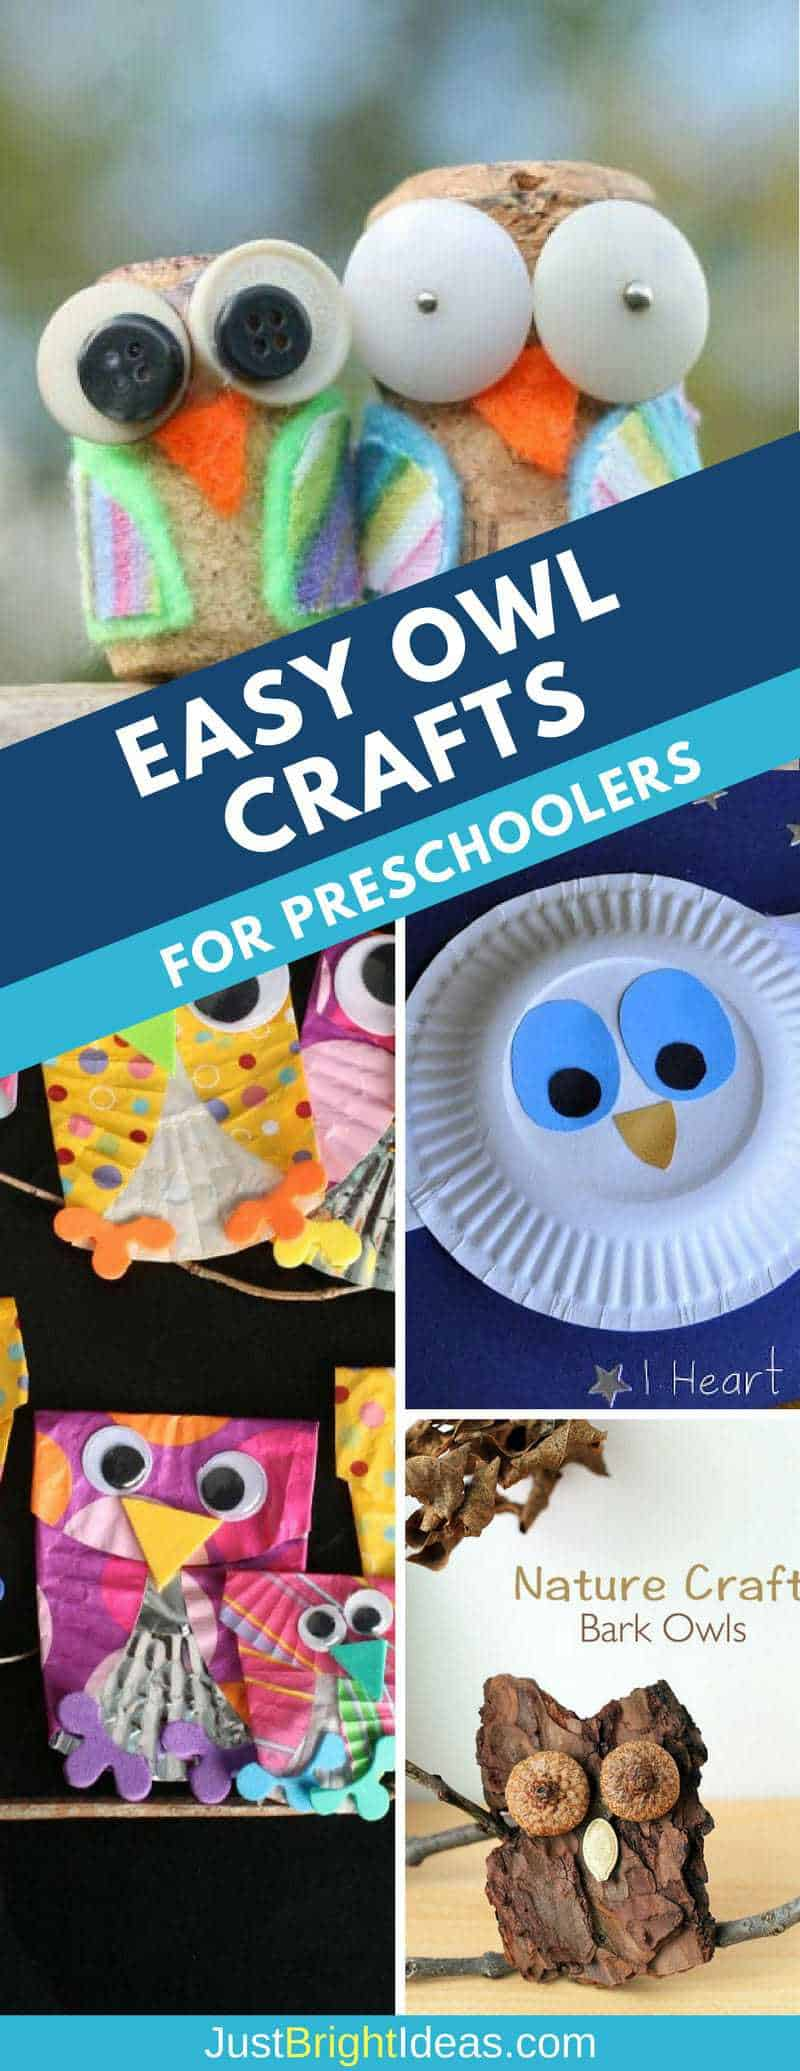 easy owl crafts for preschoolers pinterest